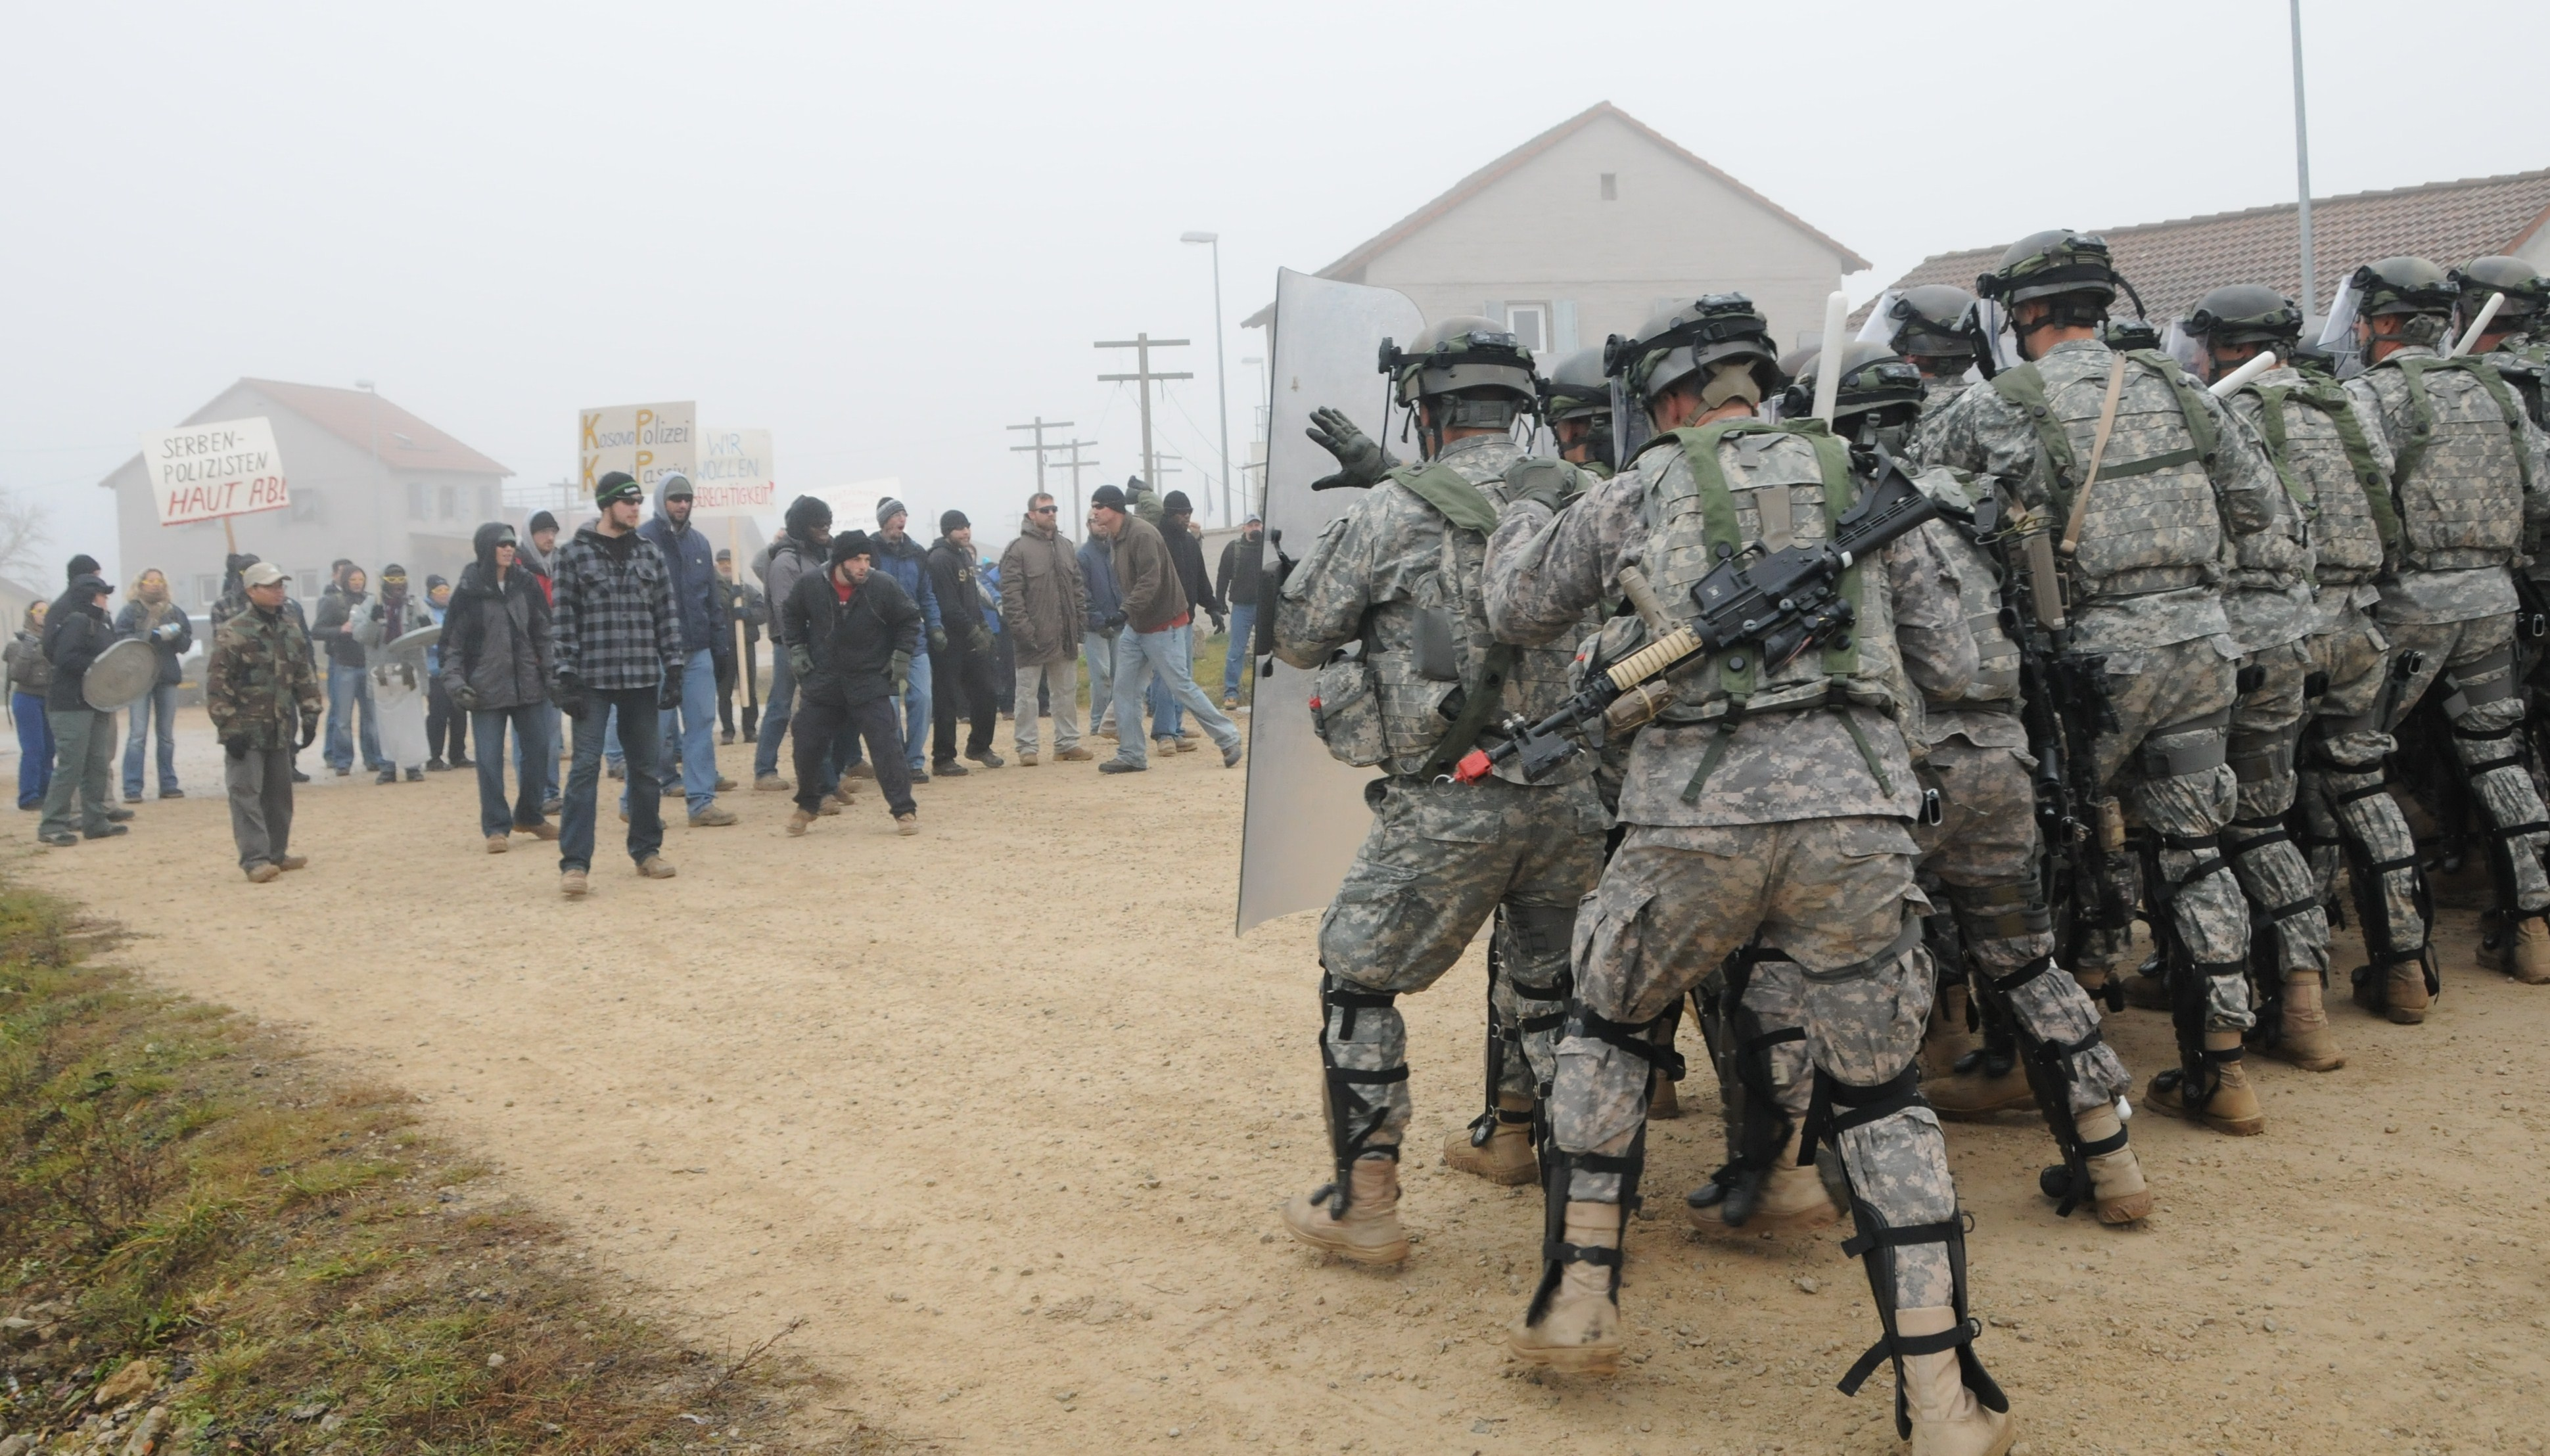 Does National Guard Infantry Get Actibated For Natural Disasters